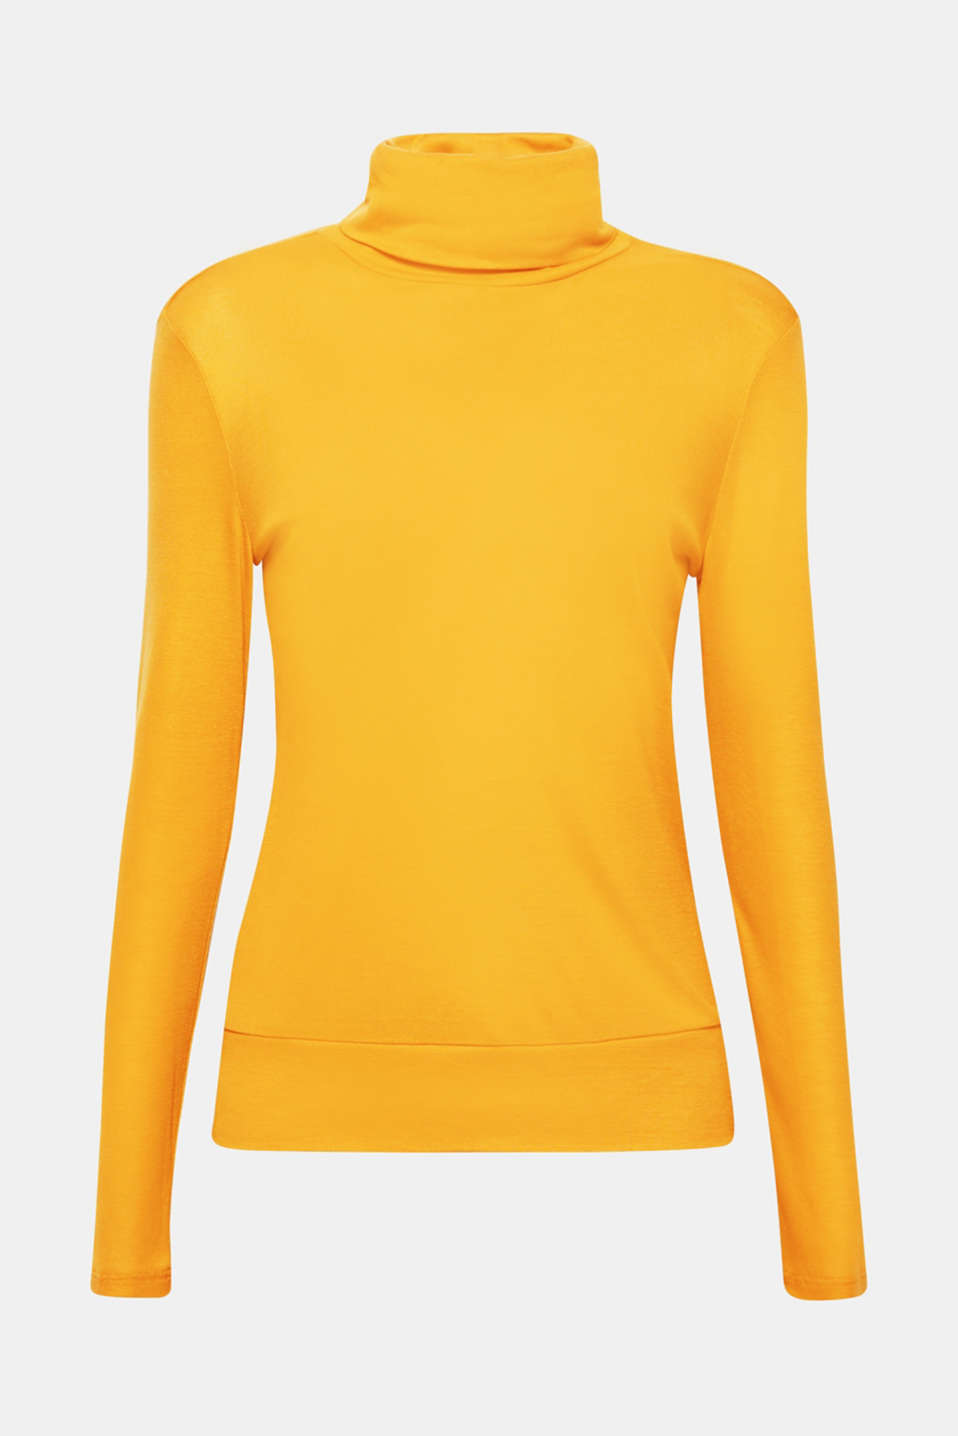 Classic polo neck with a feminine kick! The lightweight lyocell and softly draped collar make this long sleeve polo neck a sensationally snug fave.